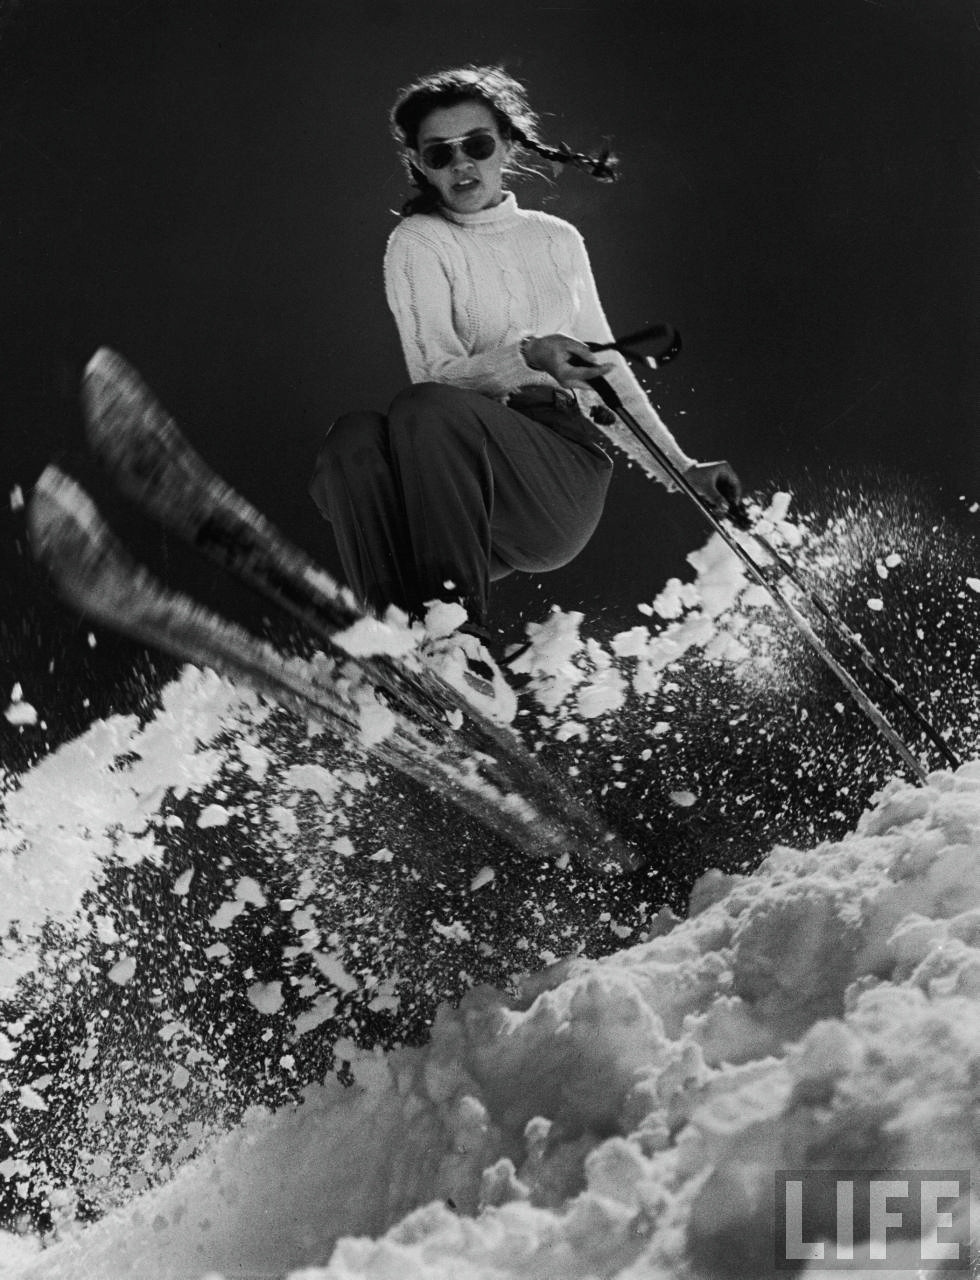 """Two-time Olympic Alpine skiing champion who competed in her first Olympics at age fifteen. A 1947 Life magazine profile stated """"her only interest in boys is how well they ski""""- After retiring from the sport, Mead Lawrence became a passionate conservationist, founding the Andrea Lawrence Institute for Mountain and Rivers to protect the Sierra Nevada mountain range."""